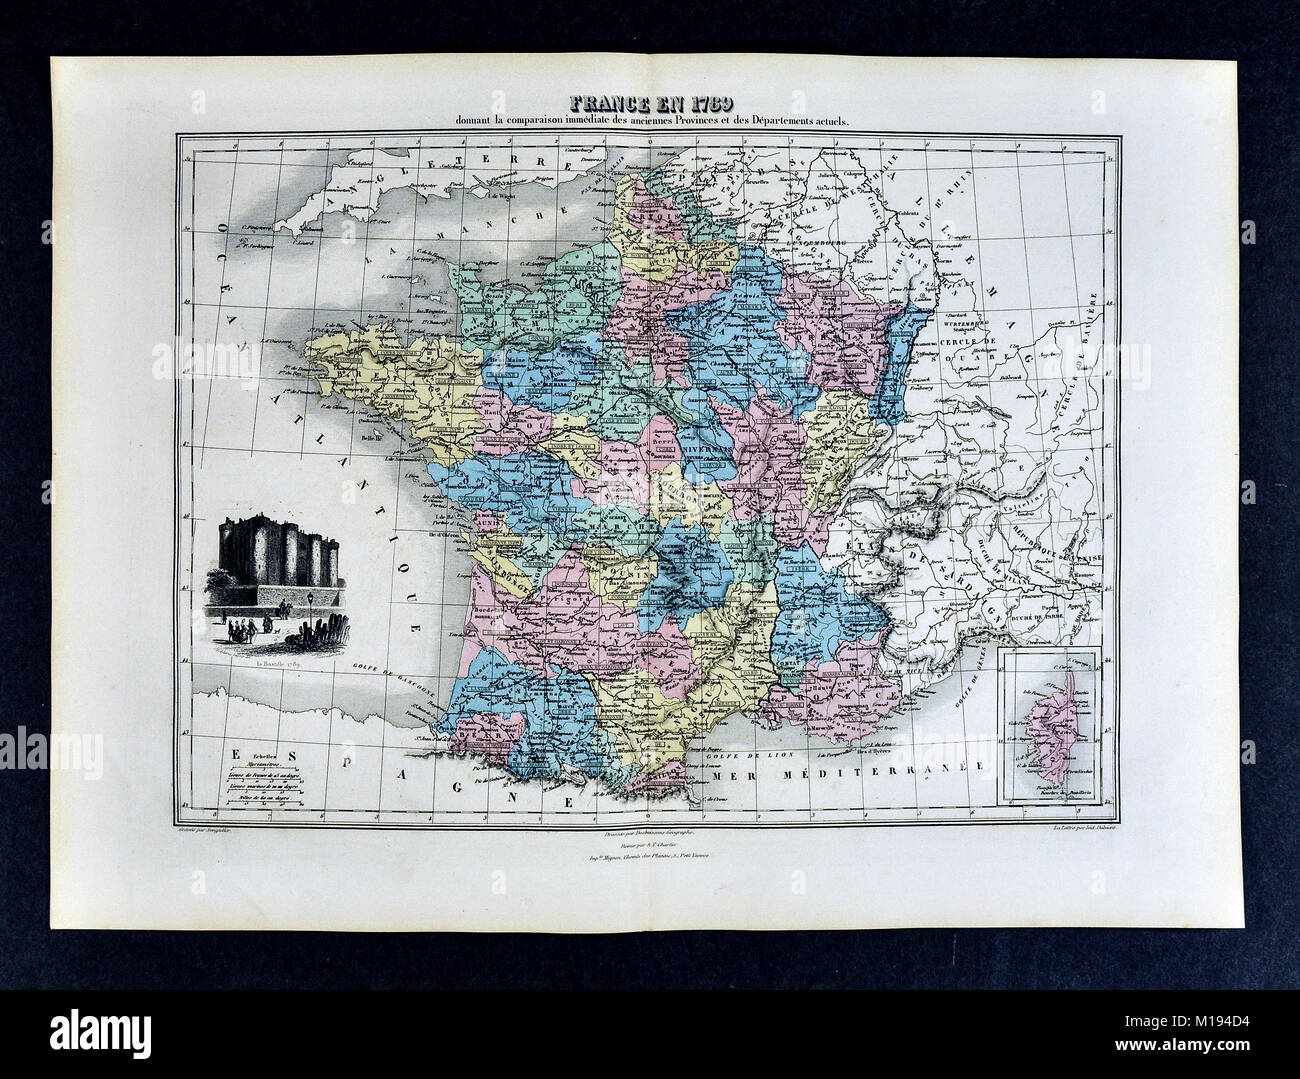 1877 migeon map france in 1789 french revolution bastille 1877 migeon map france in 1789 french revolution bastille paris gumiabroncs Gallery